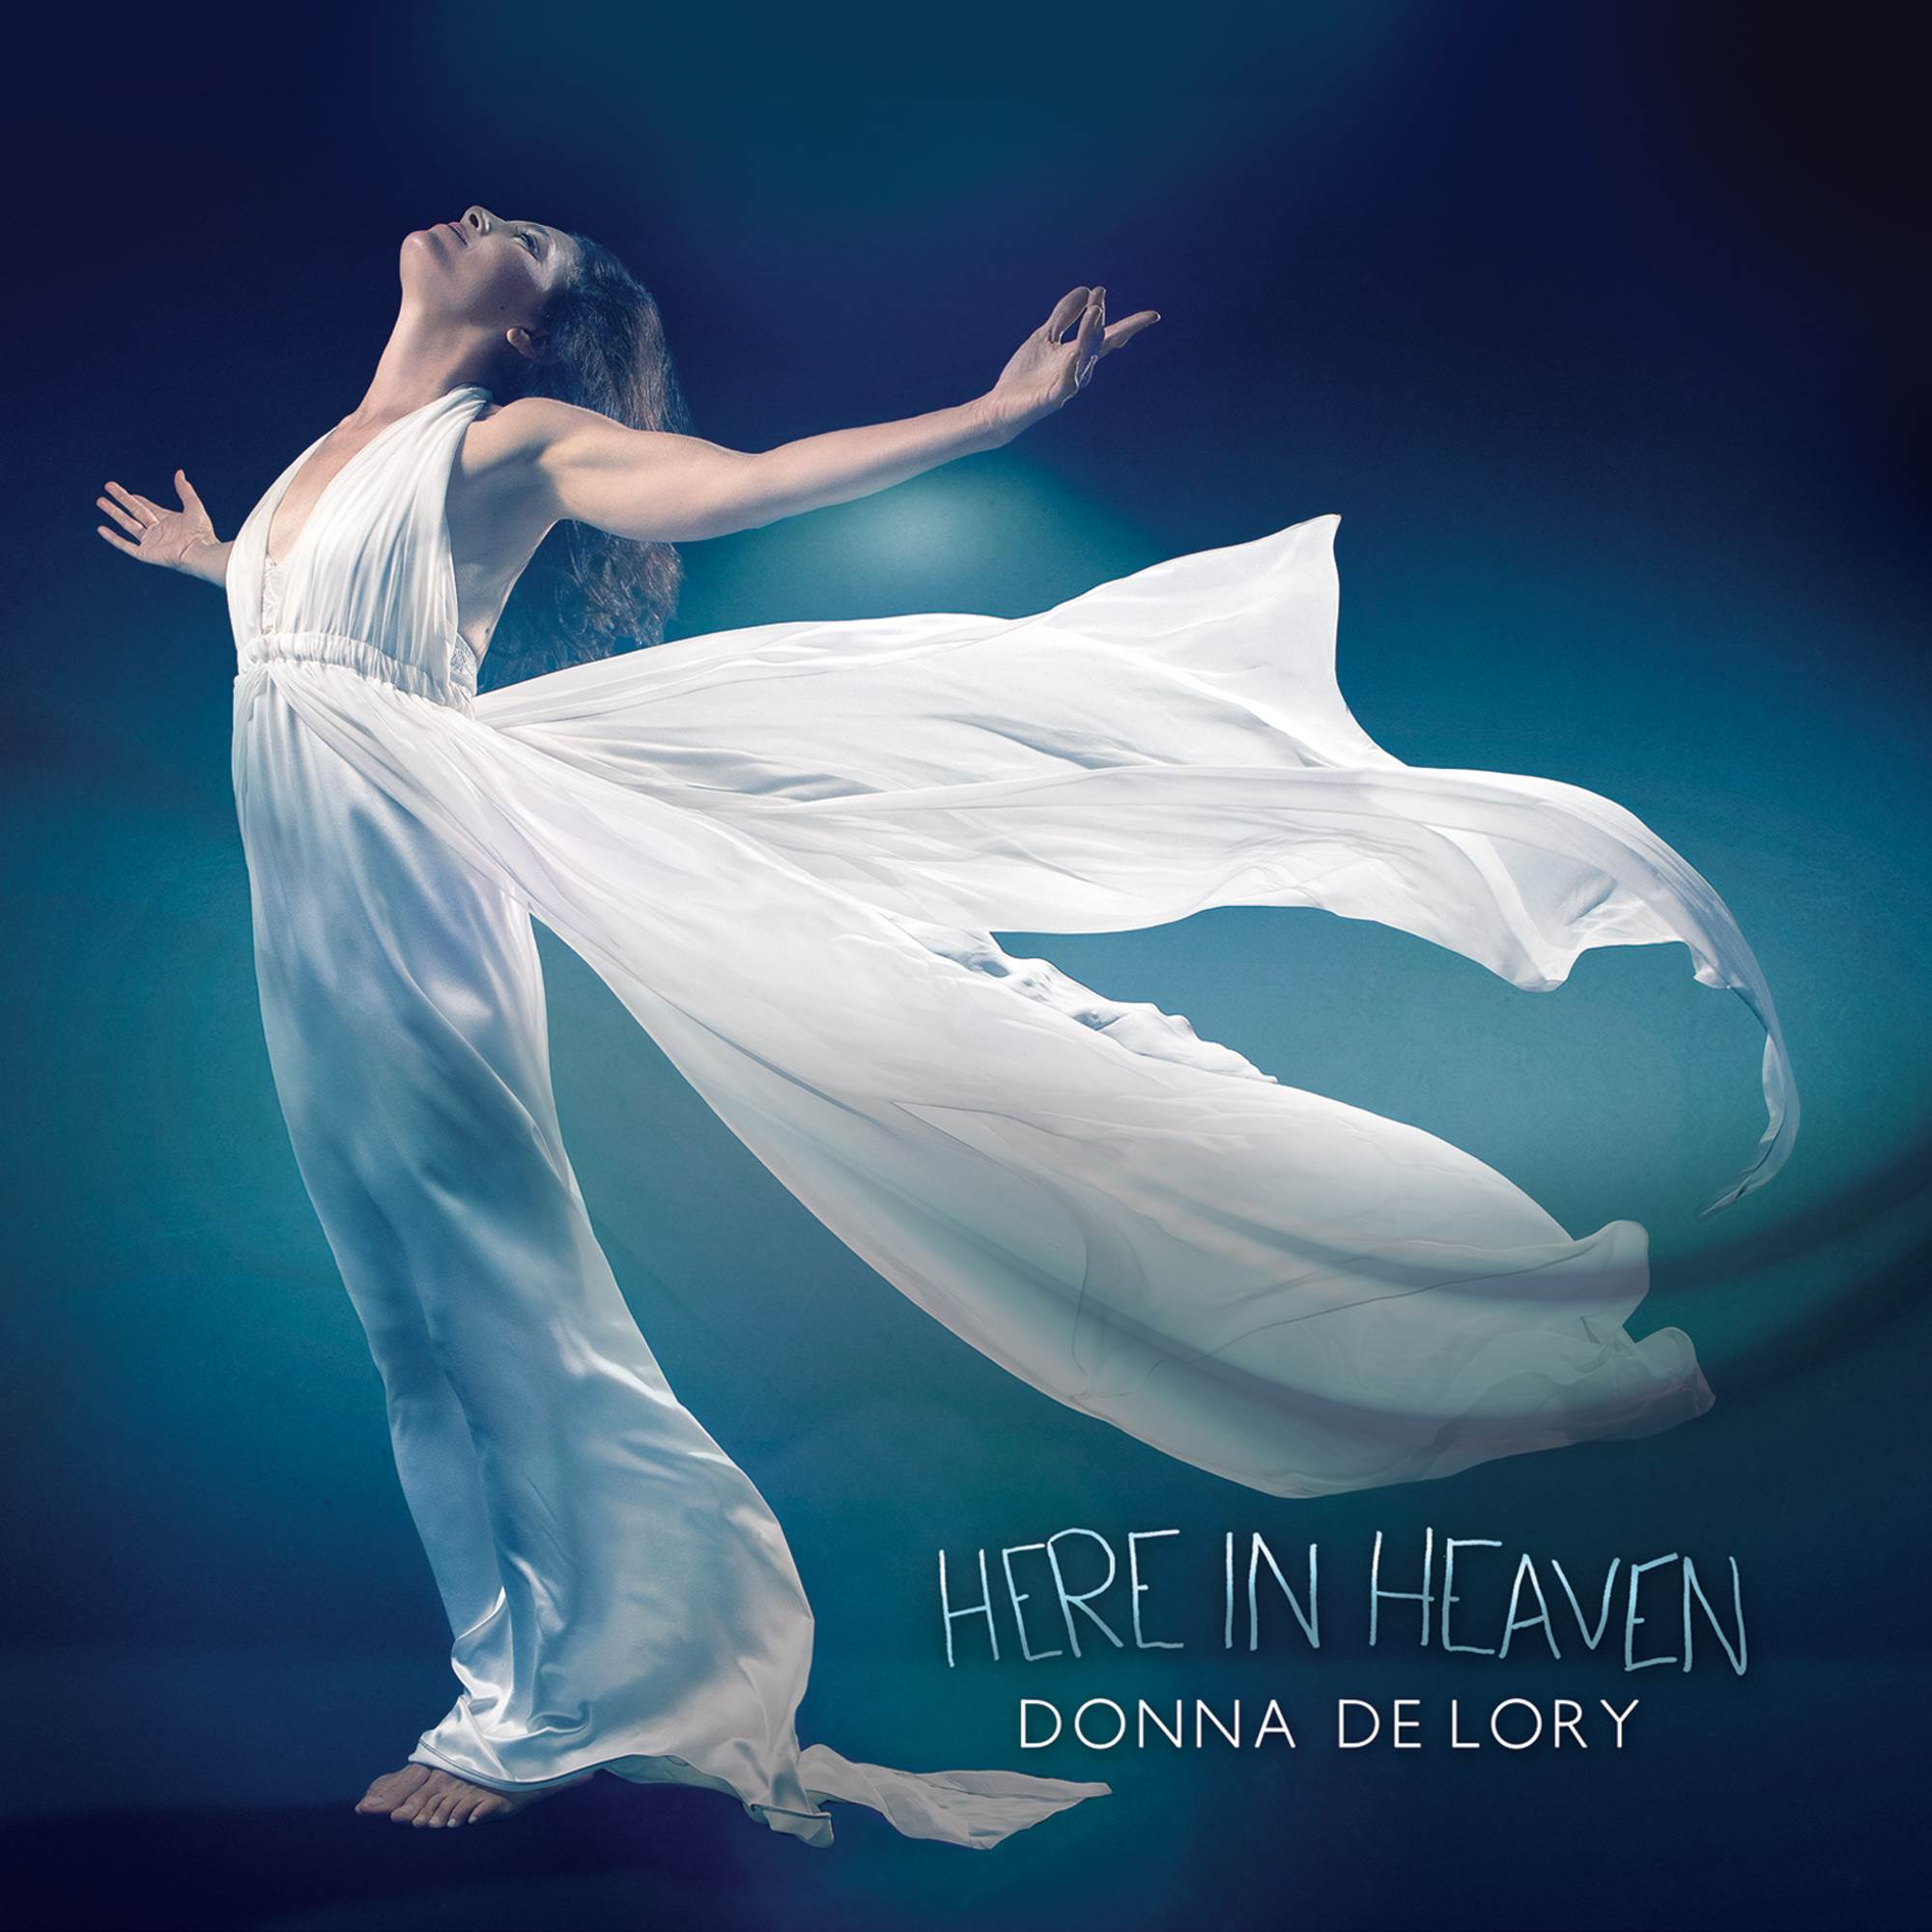 Here in Heaven album cover